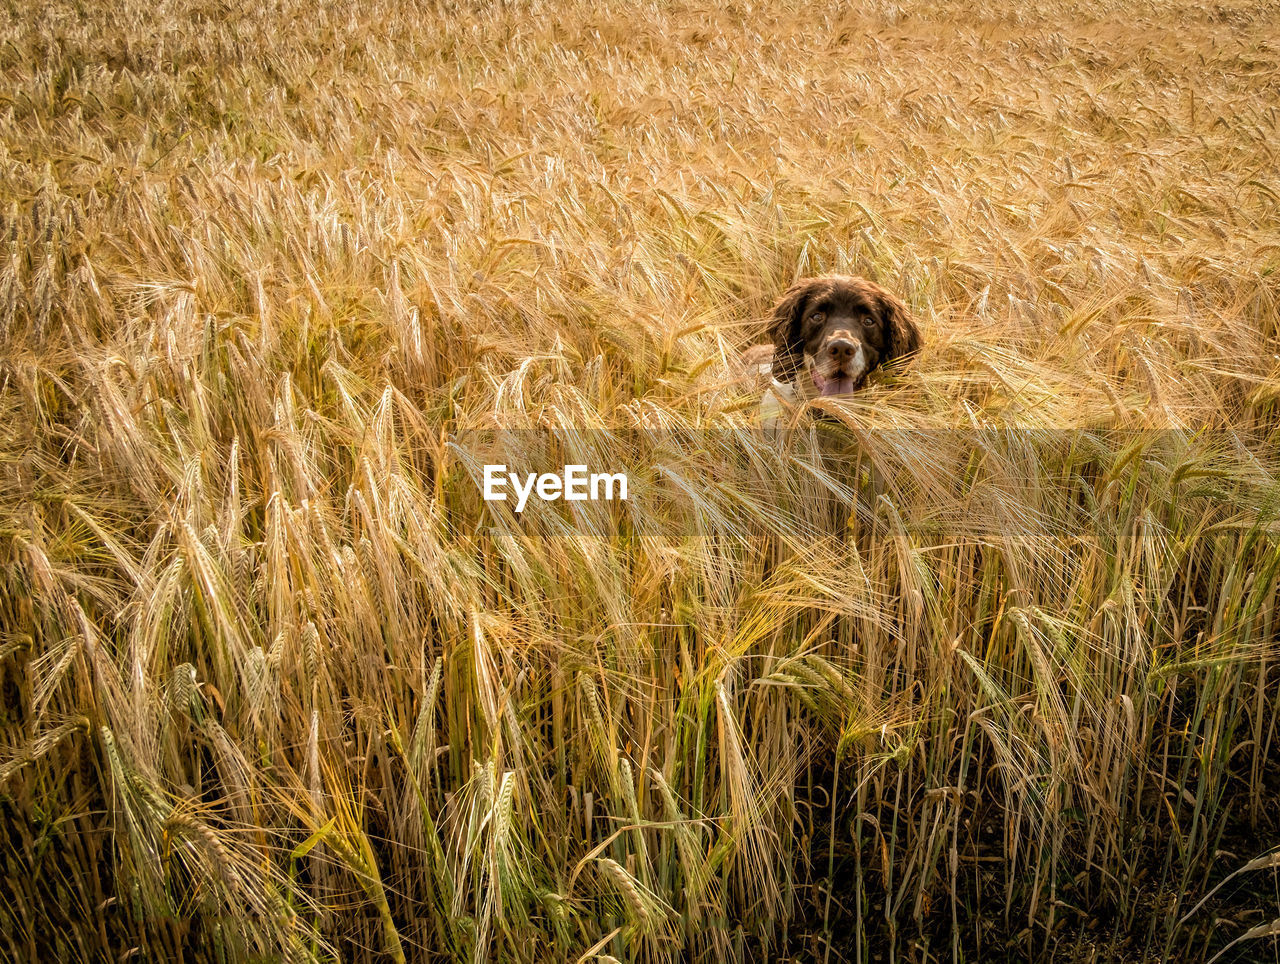 Springer Spaniel Amidst Crops On Field